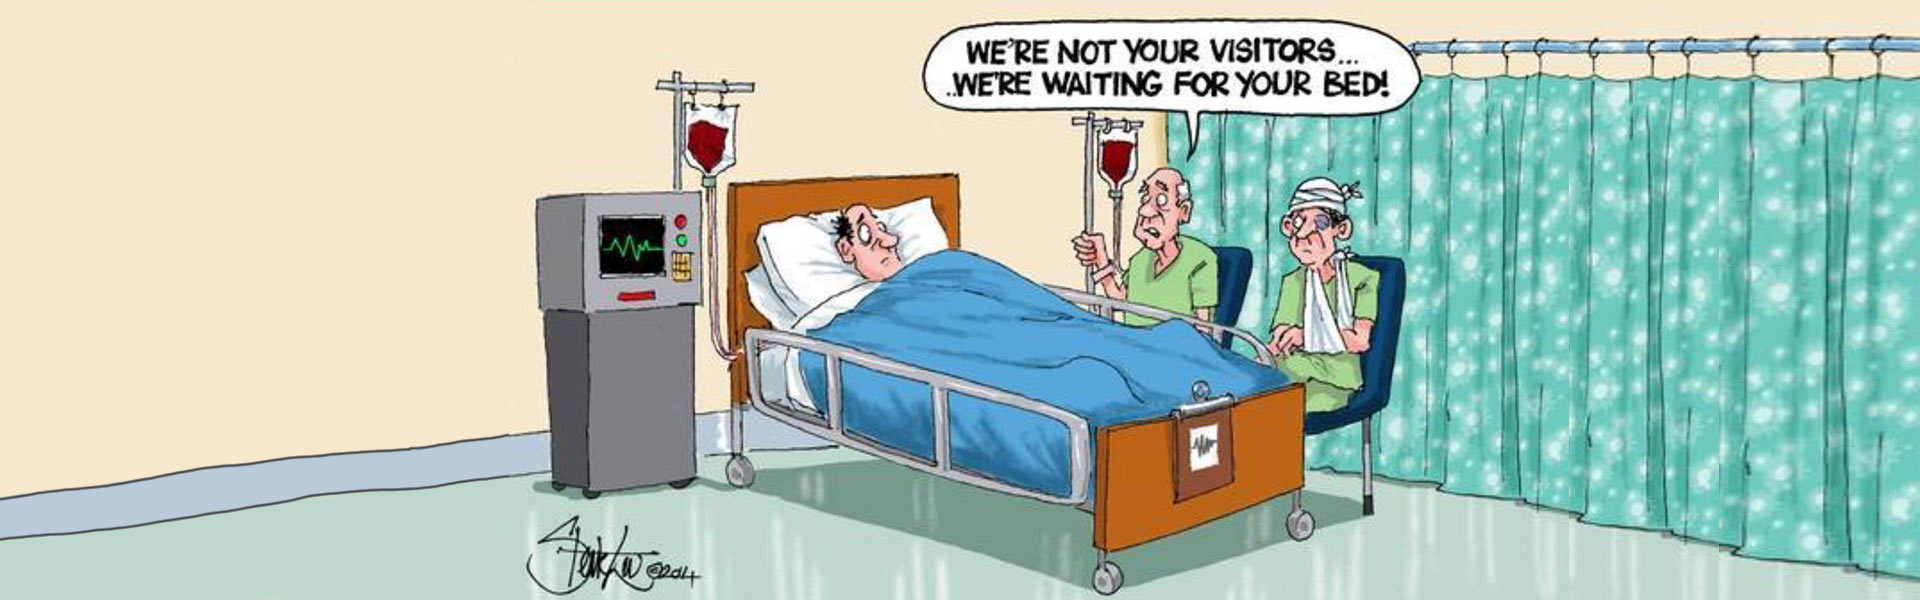 Cartoon illustration about the NHS bed crisis